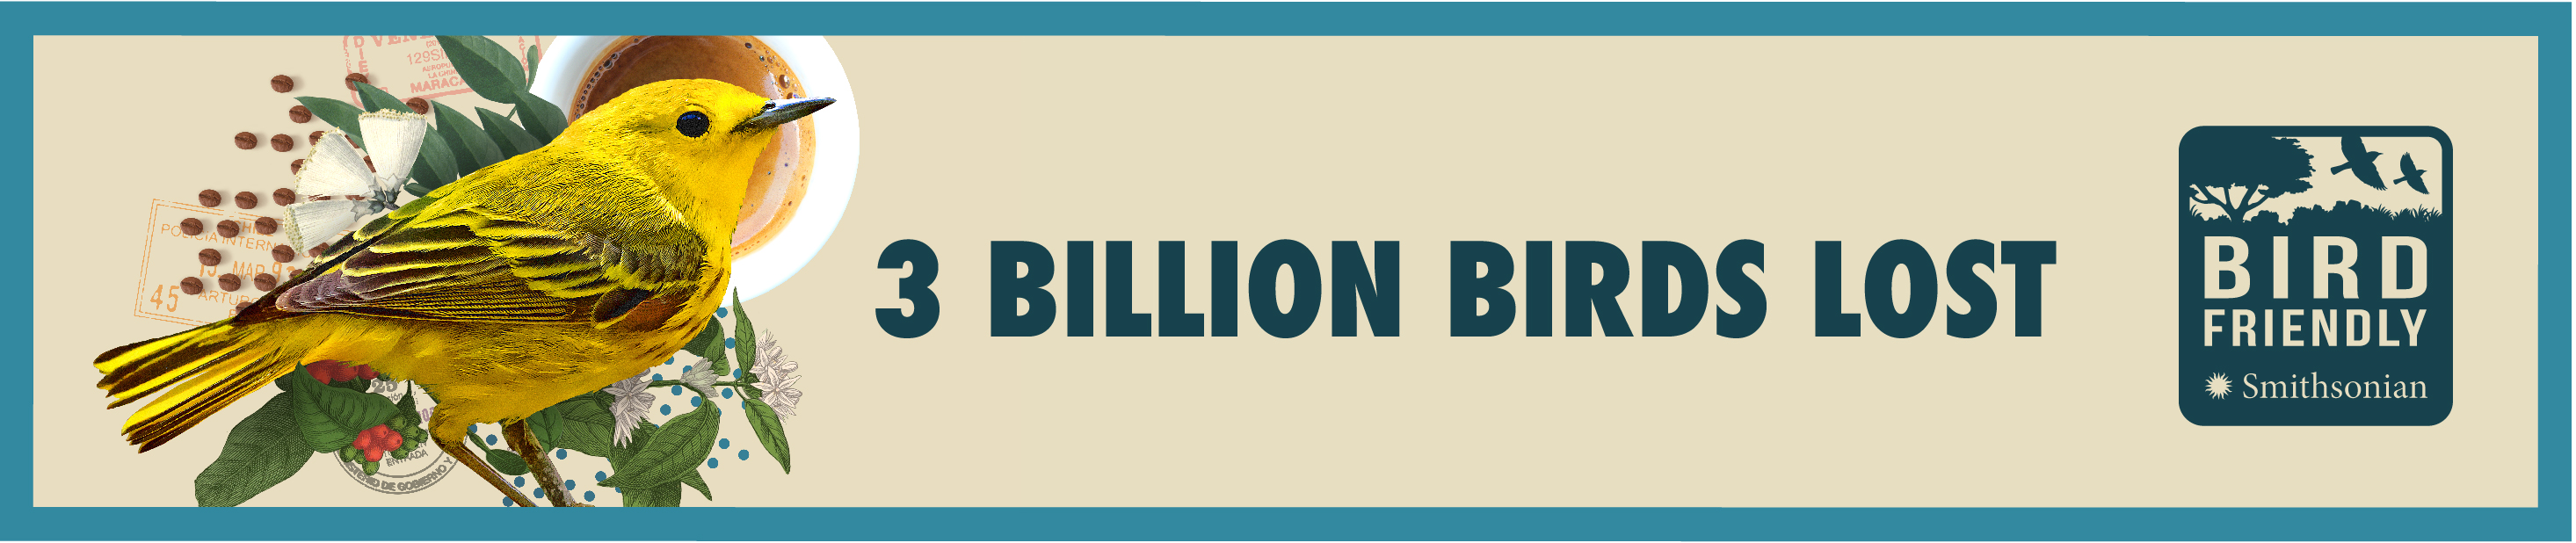 """A banner with the text """"3 billion birds lost"""" and the Smithsonian Bird Friendly logo on the right, and a yellow bird, plant trimmings, postage stamps and a cup of coffee on the left"""